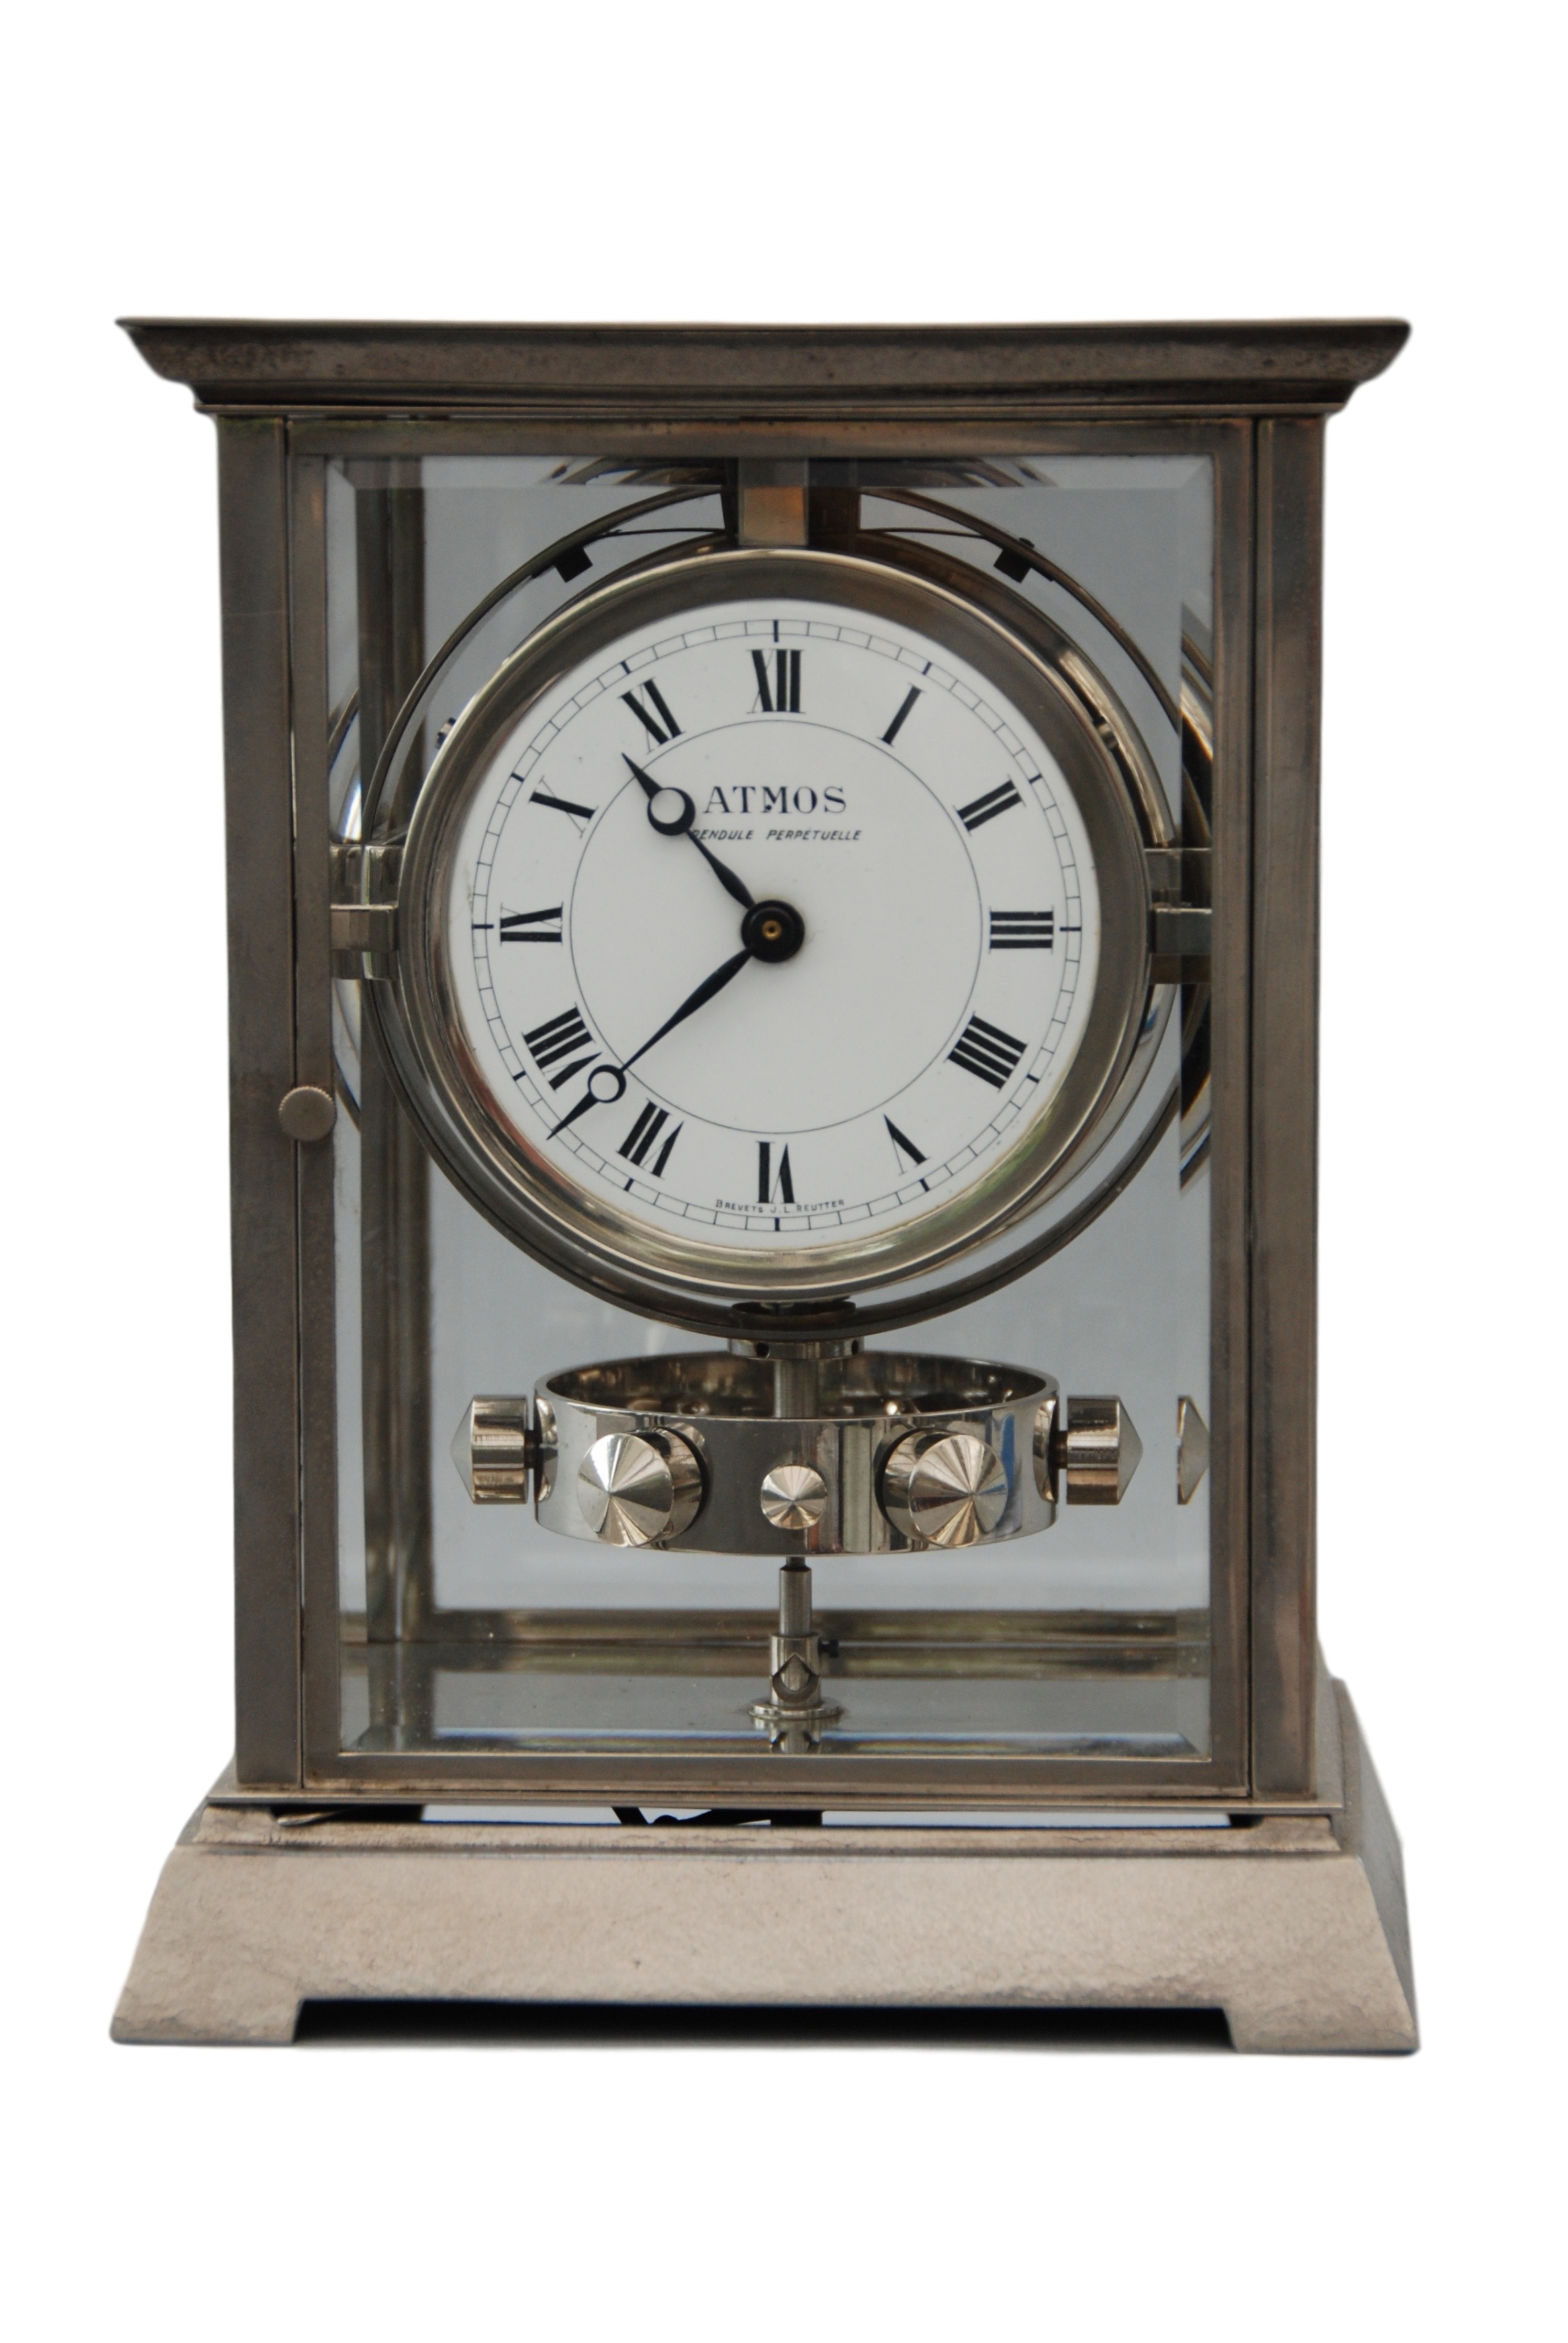 An early 1930 nickel plated art deco style J.L. Reutter four-glass atmos clock, small version.